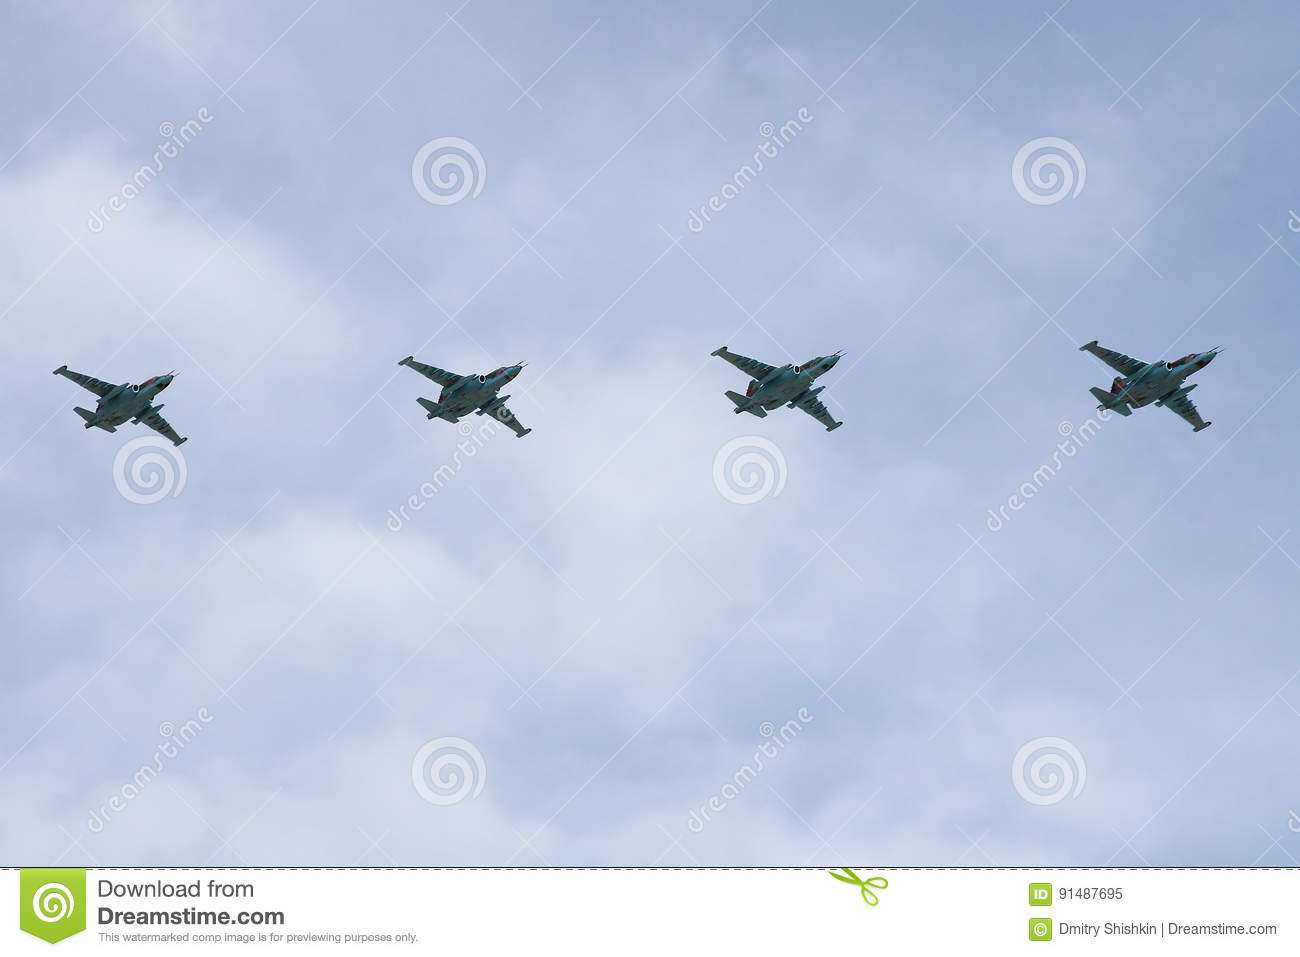 Moscow, Russia - may 09, 2008: celebration of Victory Day WWII parade on red square. Solemn passage of military equipment, flying